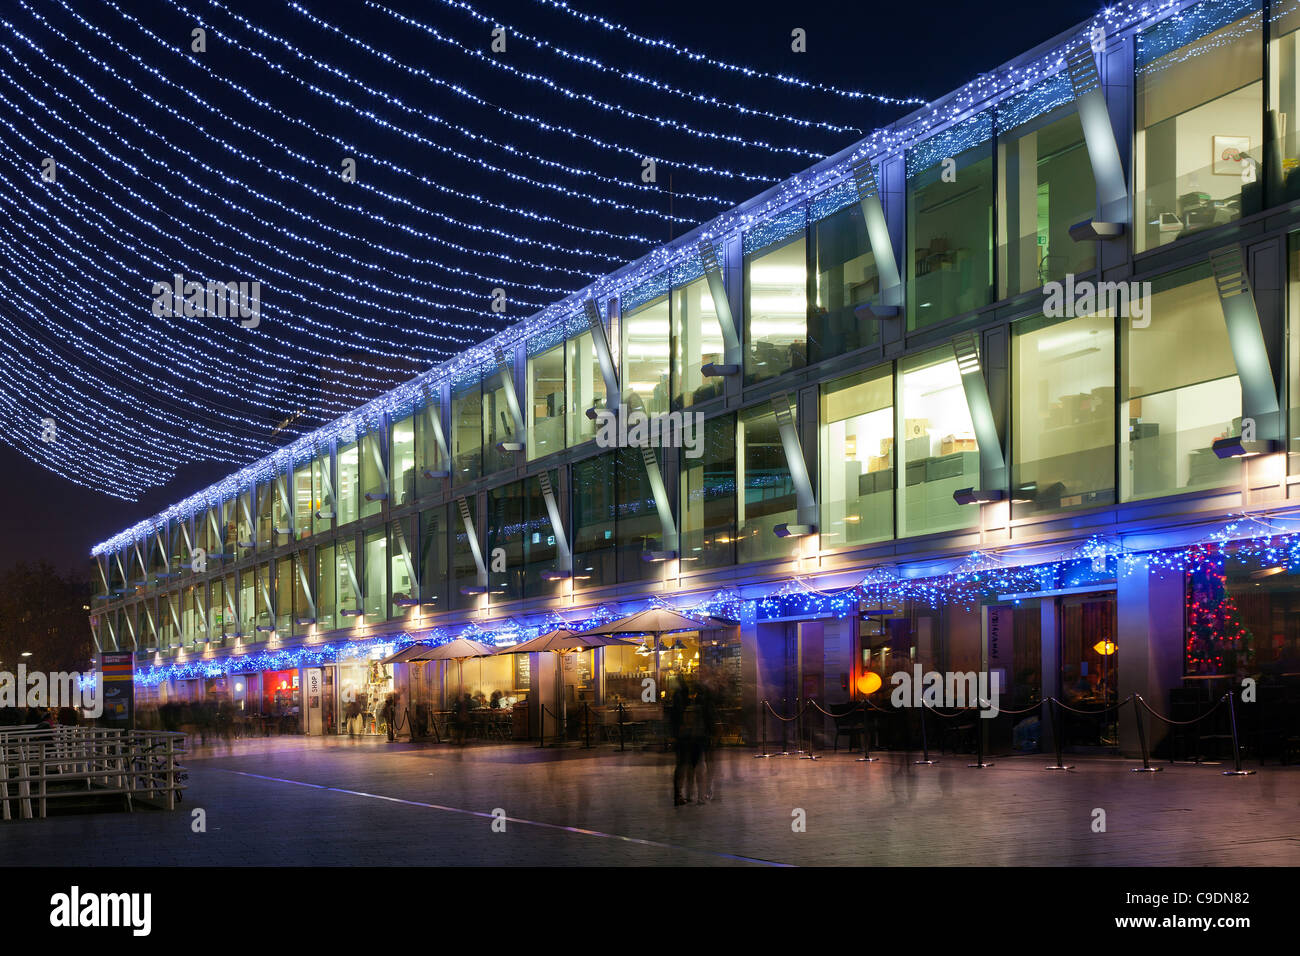 Christmas lights on the South Bank, London at night, looking through lines of Xmas lights - Stock Image